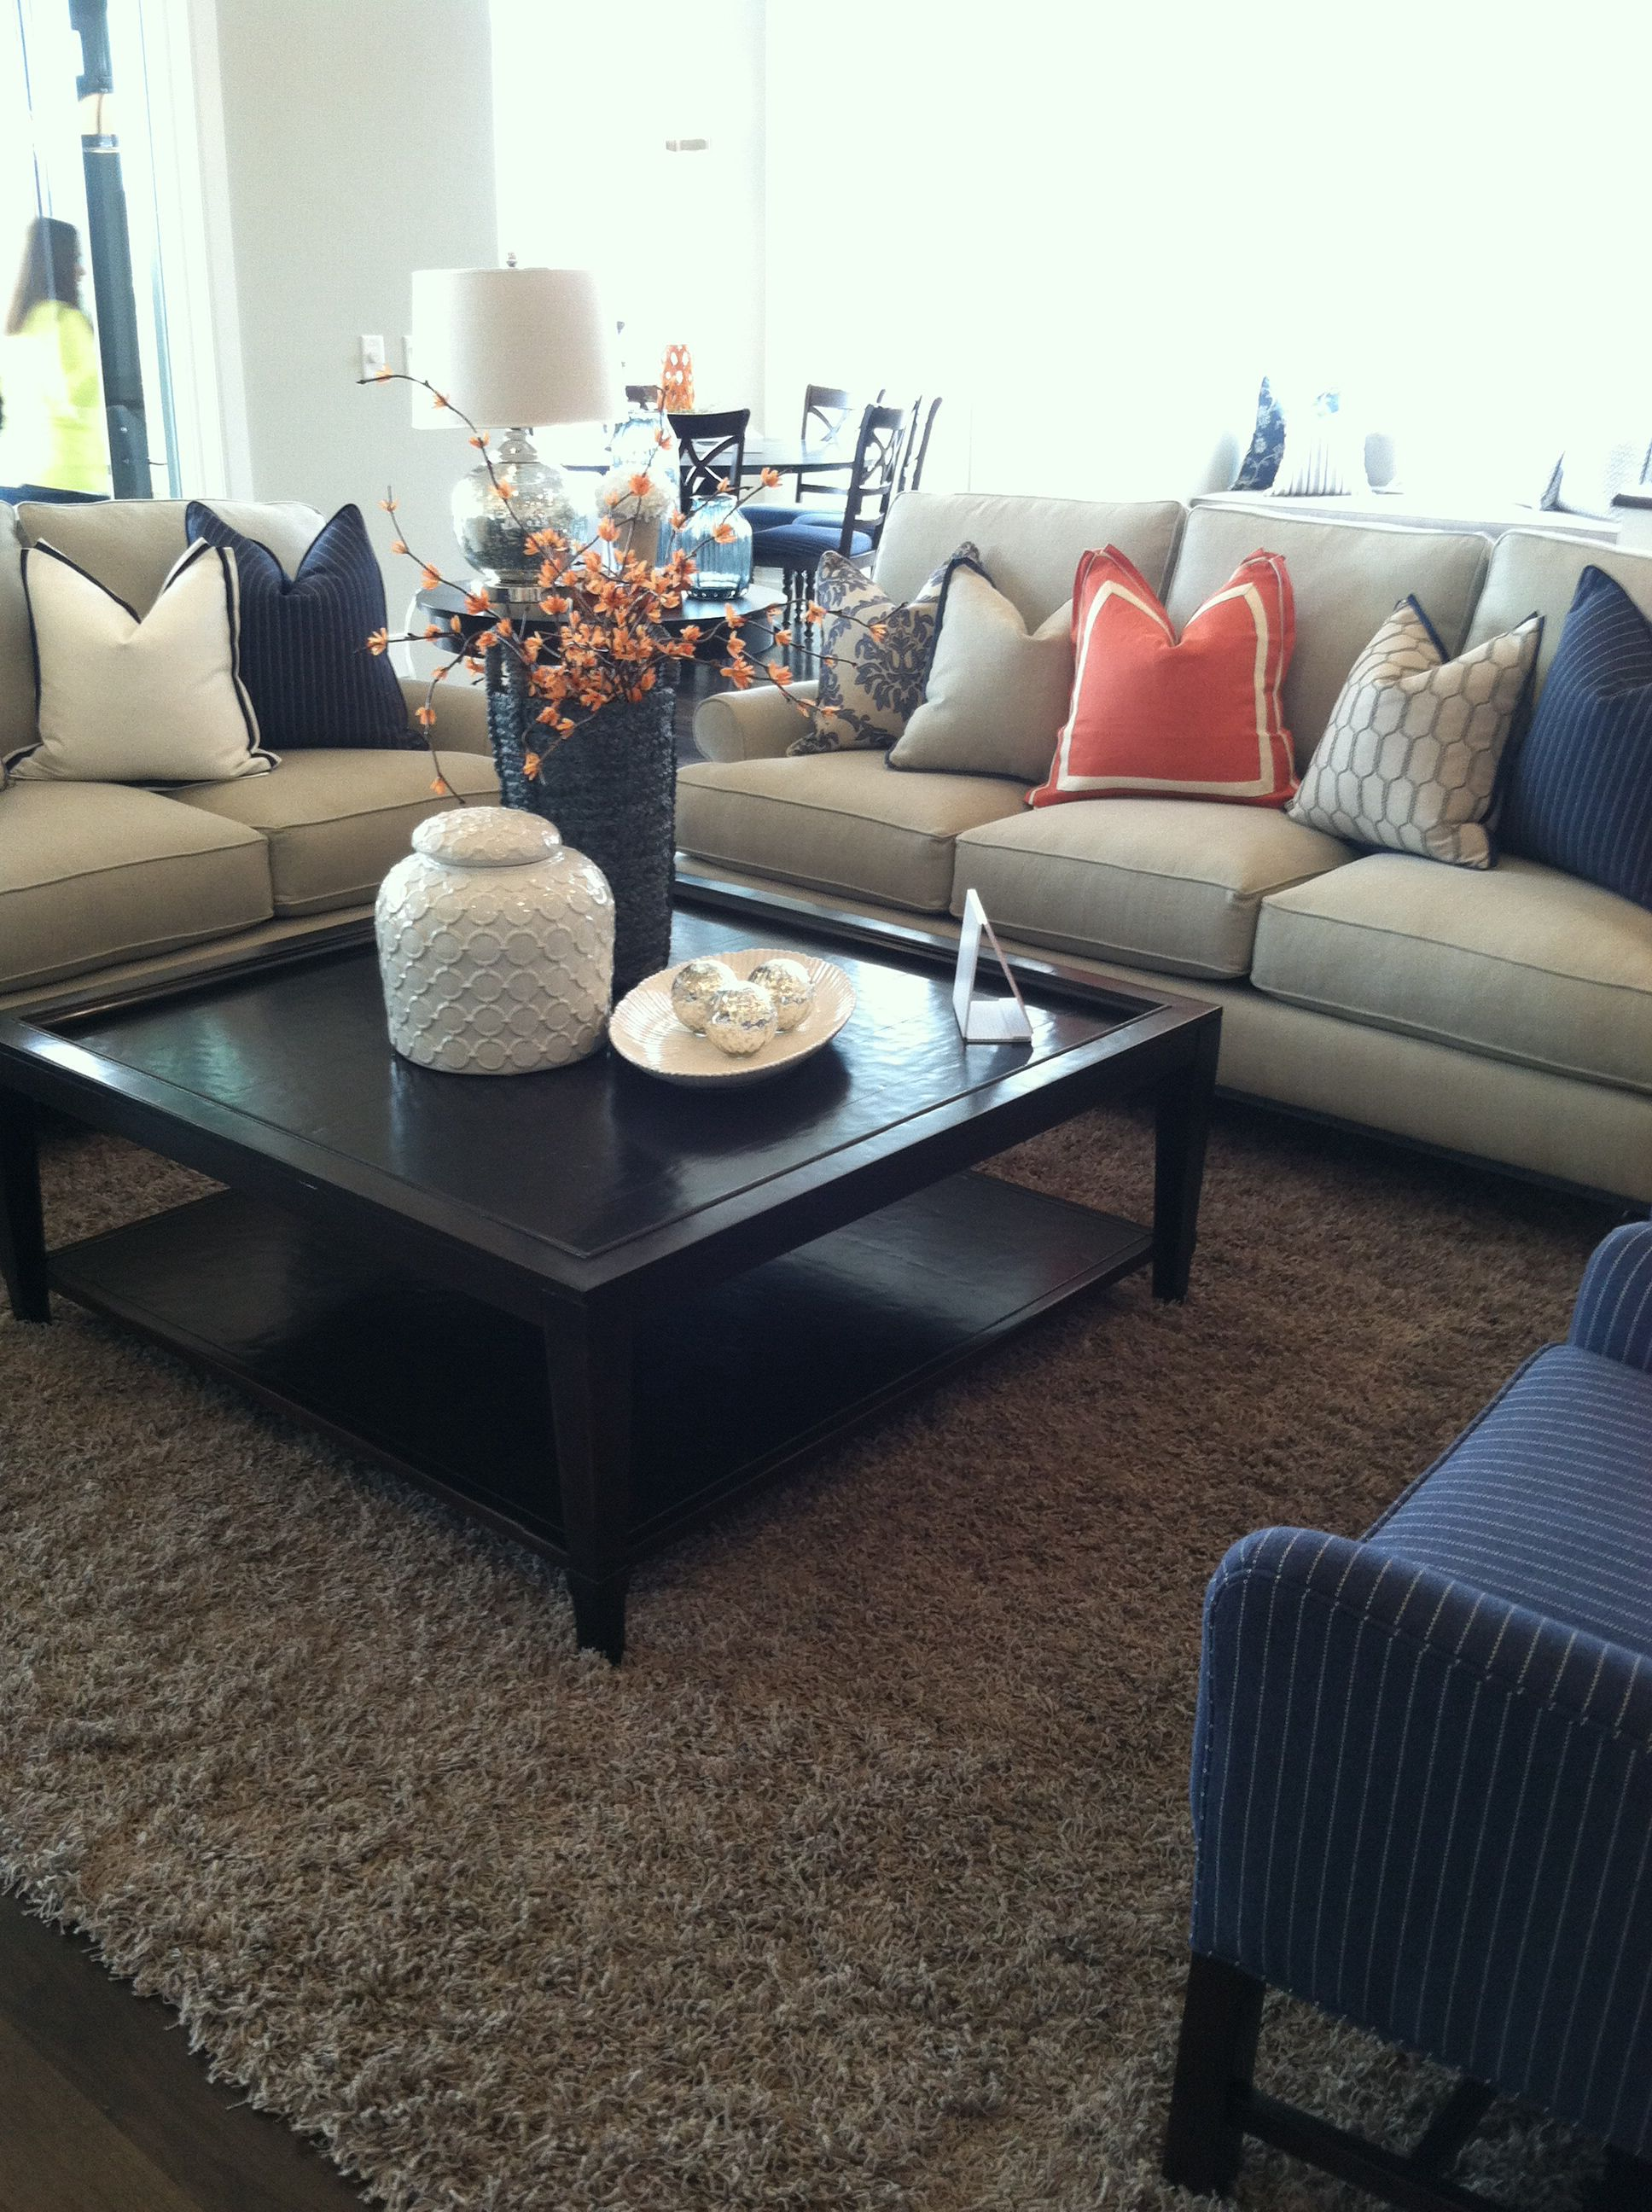 Best Orange And Navy Blue Accent For Family Room Looks So 400 x 300